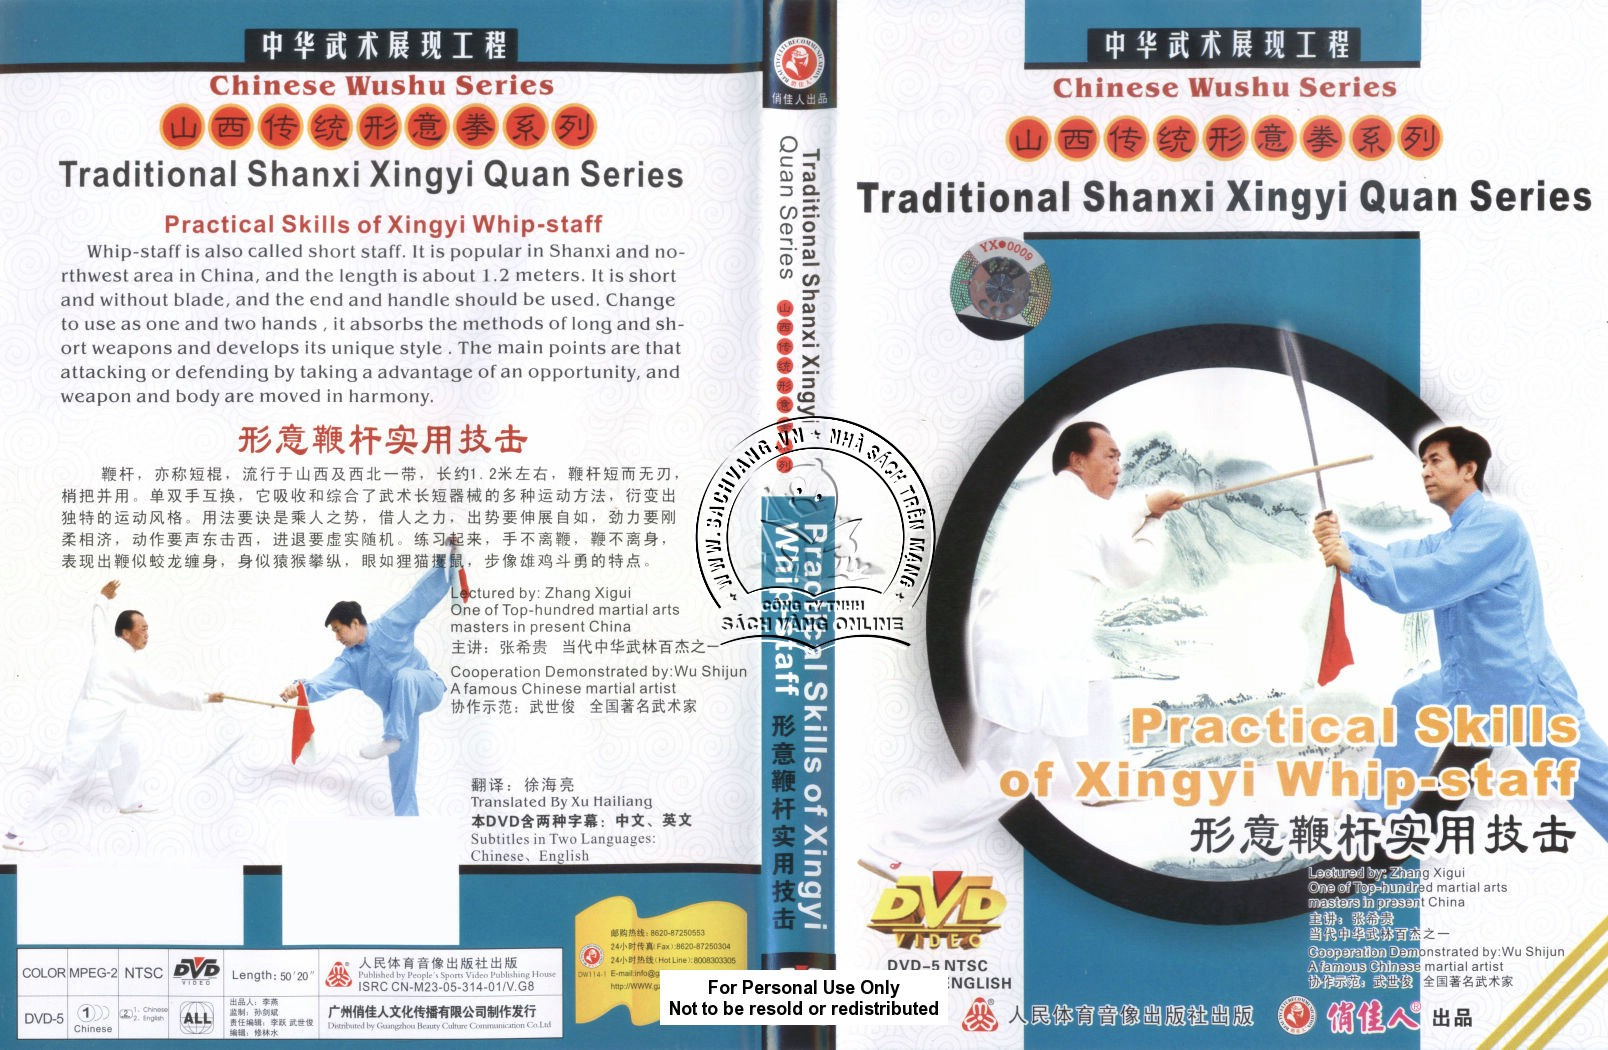 04 - Practical Skills Of Xingyi Whip-Staff